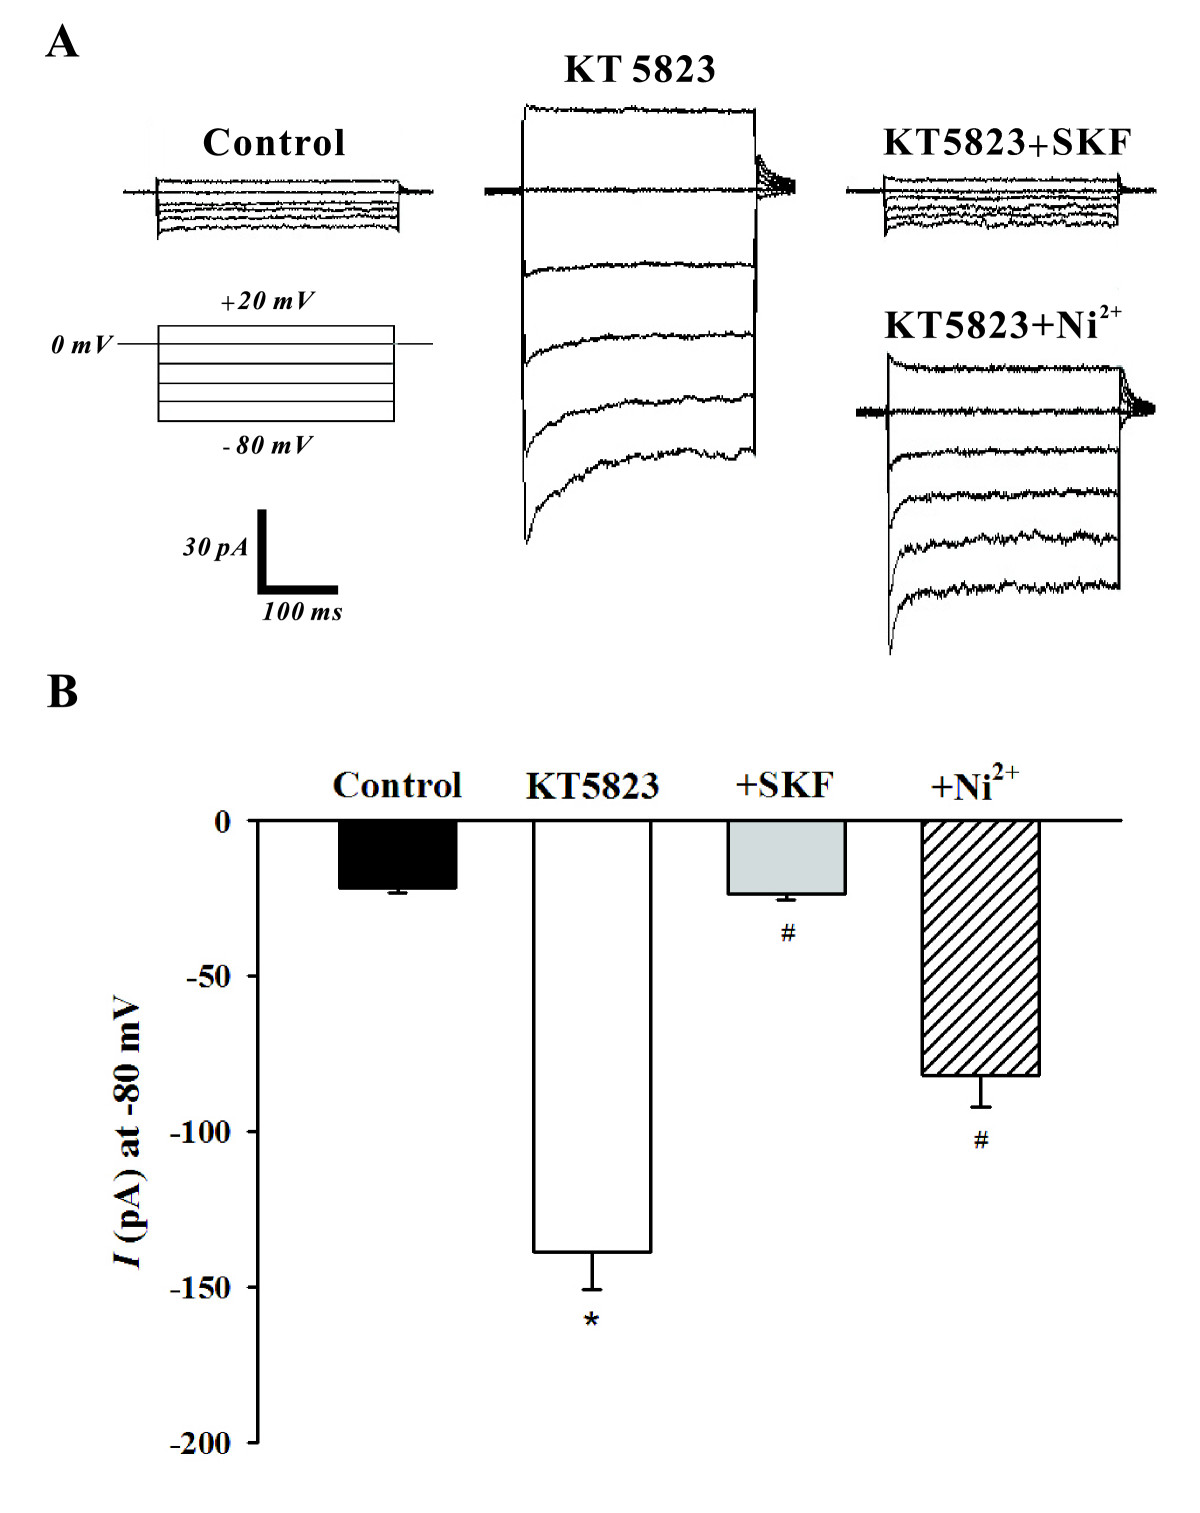 https://static-content.springer.com/image/art%3A10.1186%2F1423-0127-18-2/MediaObjects/12929_2010_Article_254_Fig2_HTML.jpg